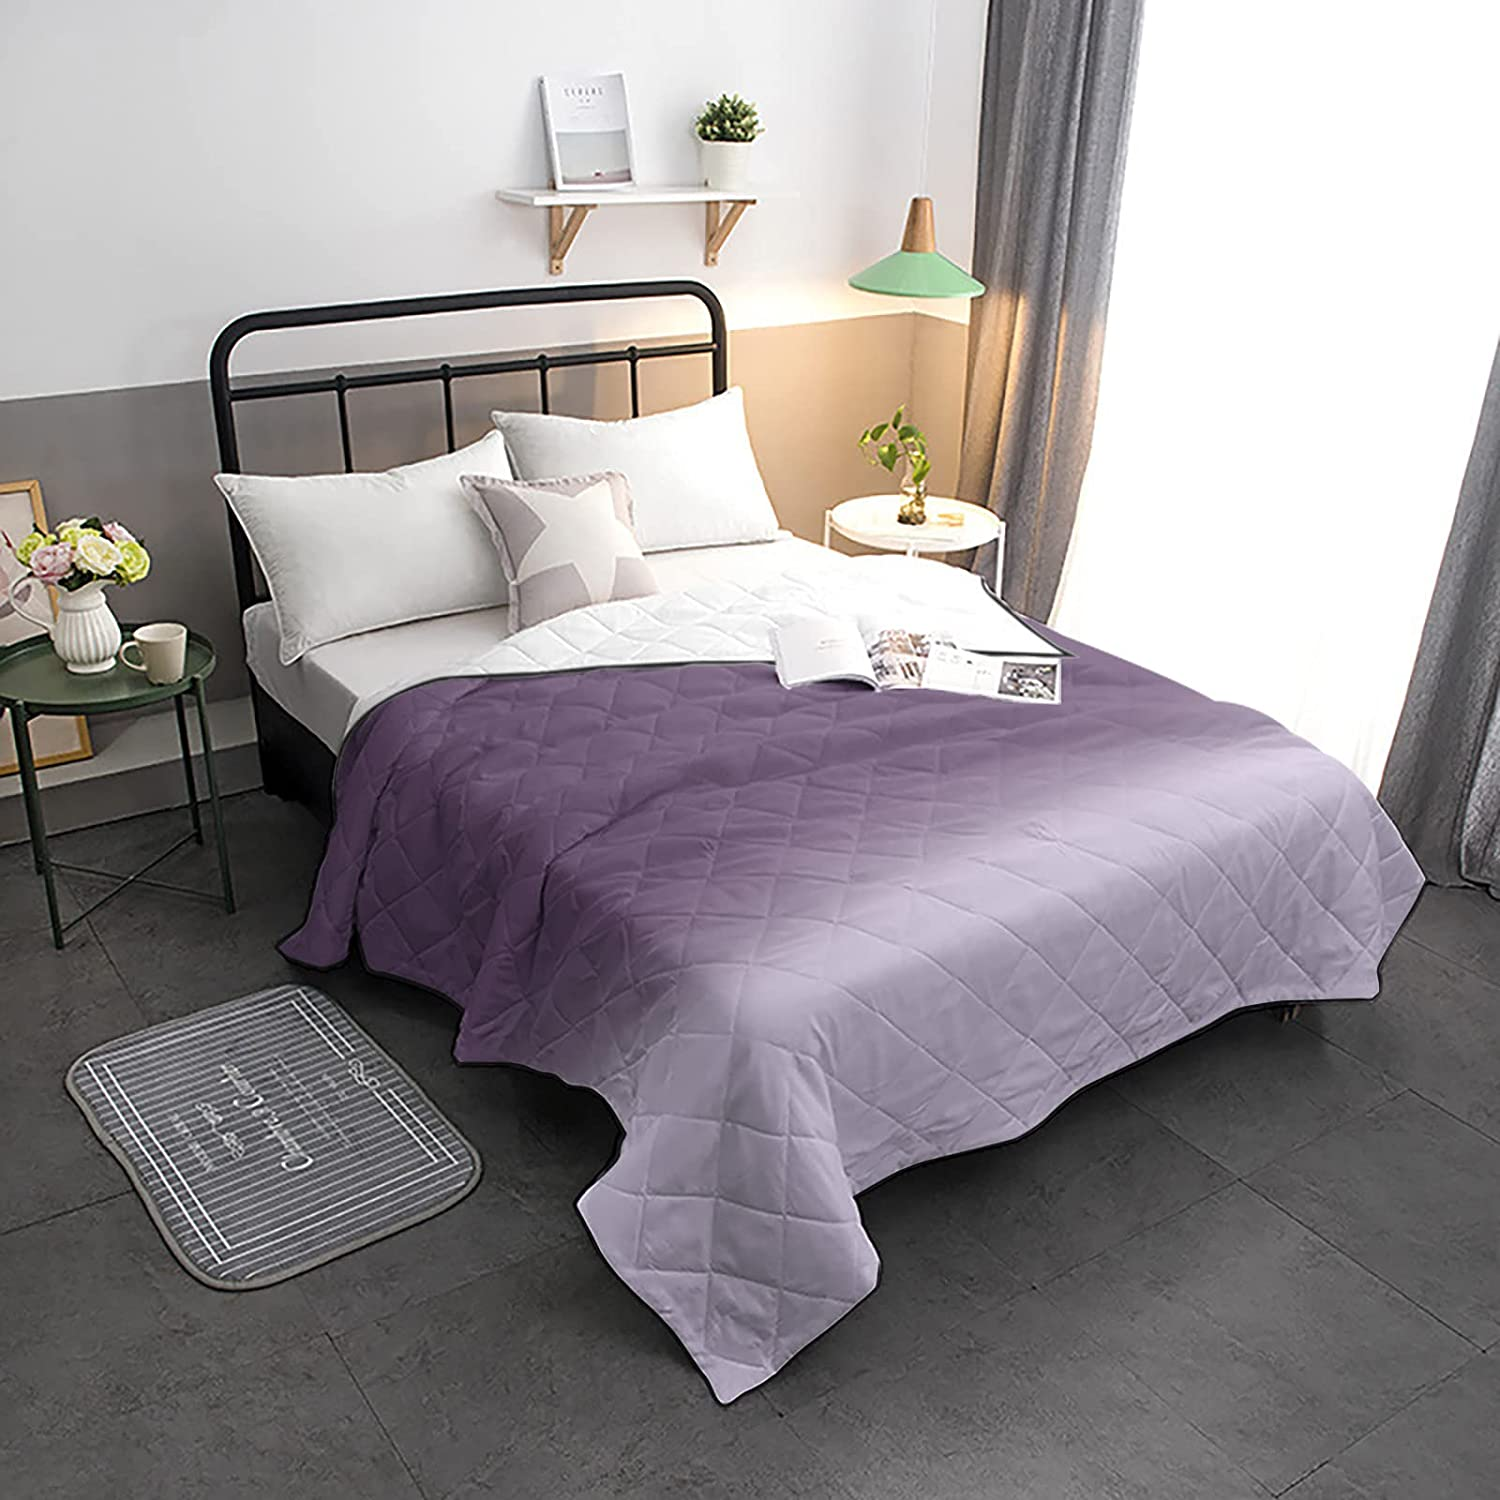 HELLOWINK Bedding Comforter Duvet Size-Soft Twin Qu We OFFer at Gifts cheap prices Lighweight